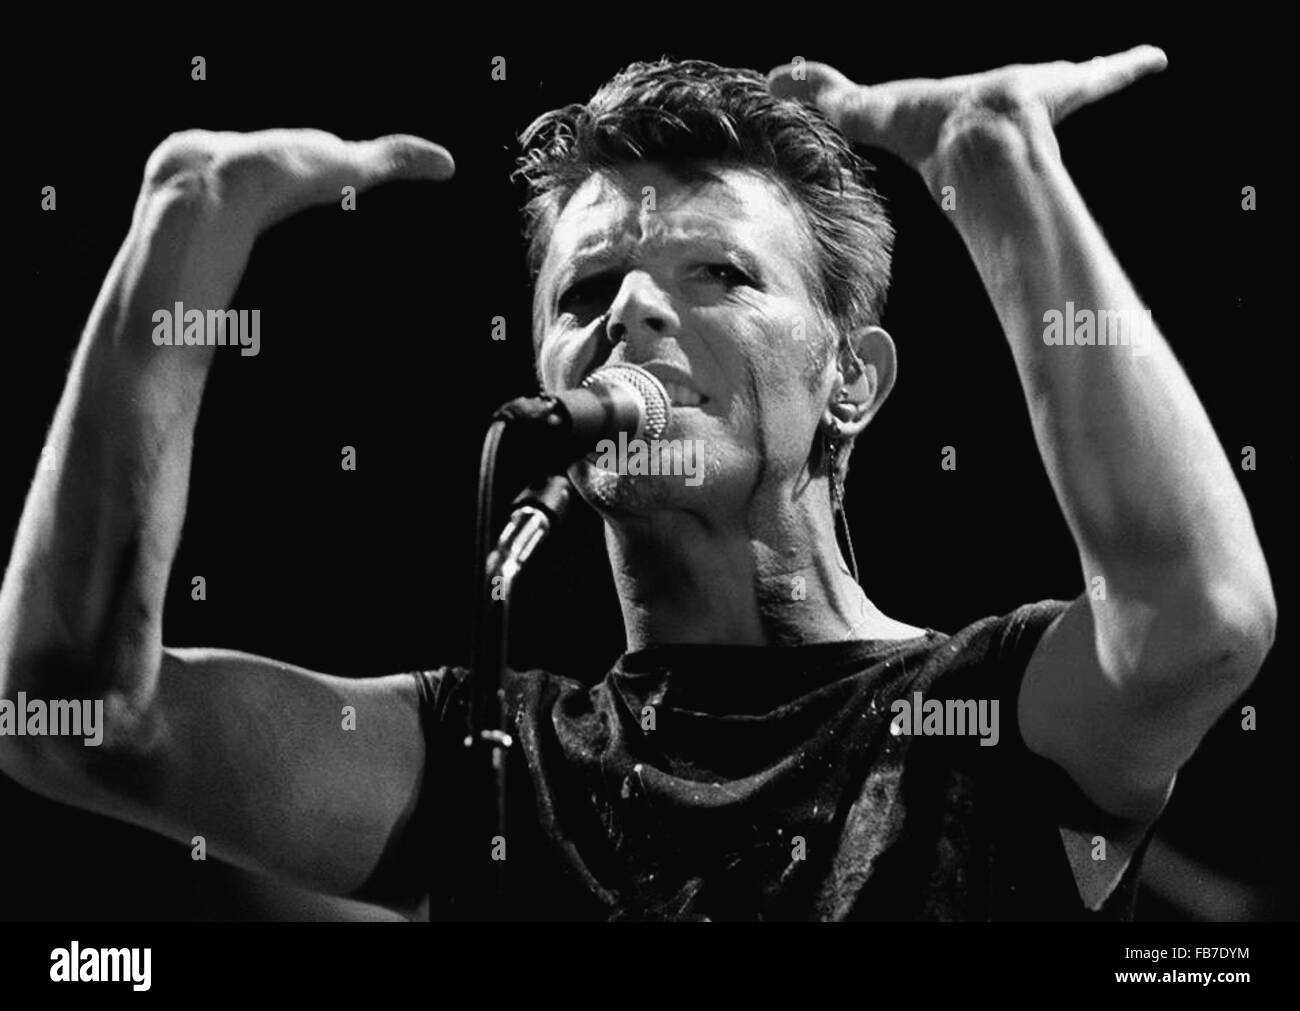 FILE - A file picture shows David Bowie as he performs at Festhalle in Frankfurt am Main, Germany, 31 January 1996. Stock Photo